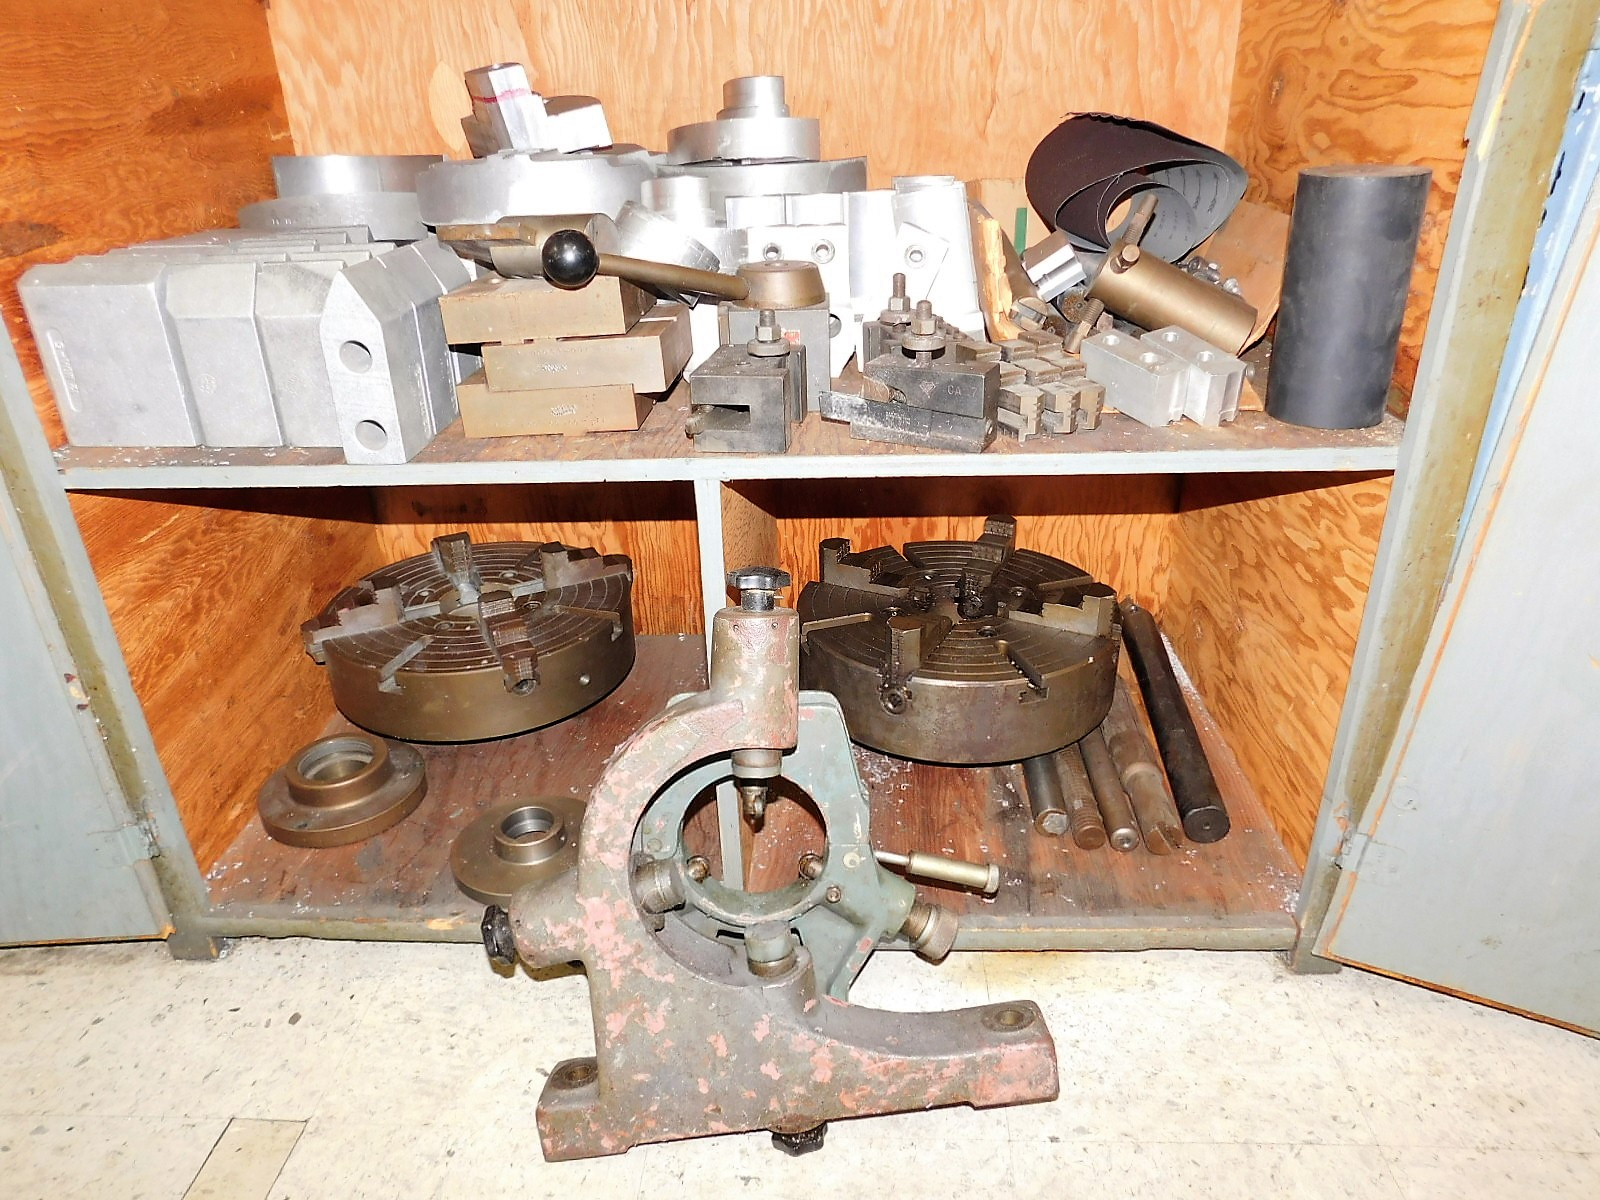 Lot 12 - TARNOW LATHE, MODEL TUJ, 48 X 2500, S/N 3725, TAILSTOCK, STEADY REST, (2) EXTRA CHUCKS AND TOOLING